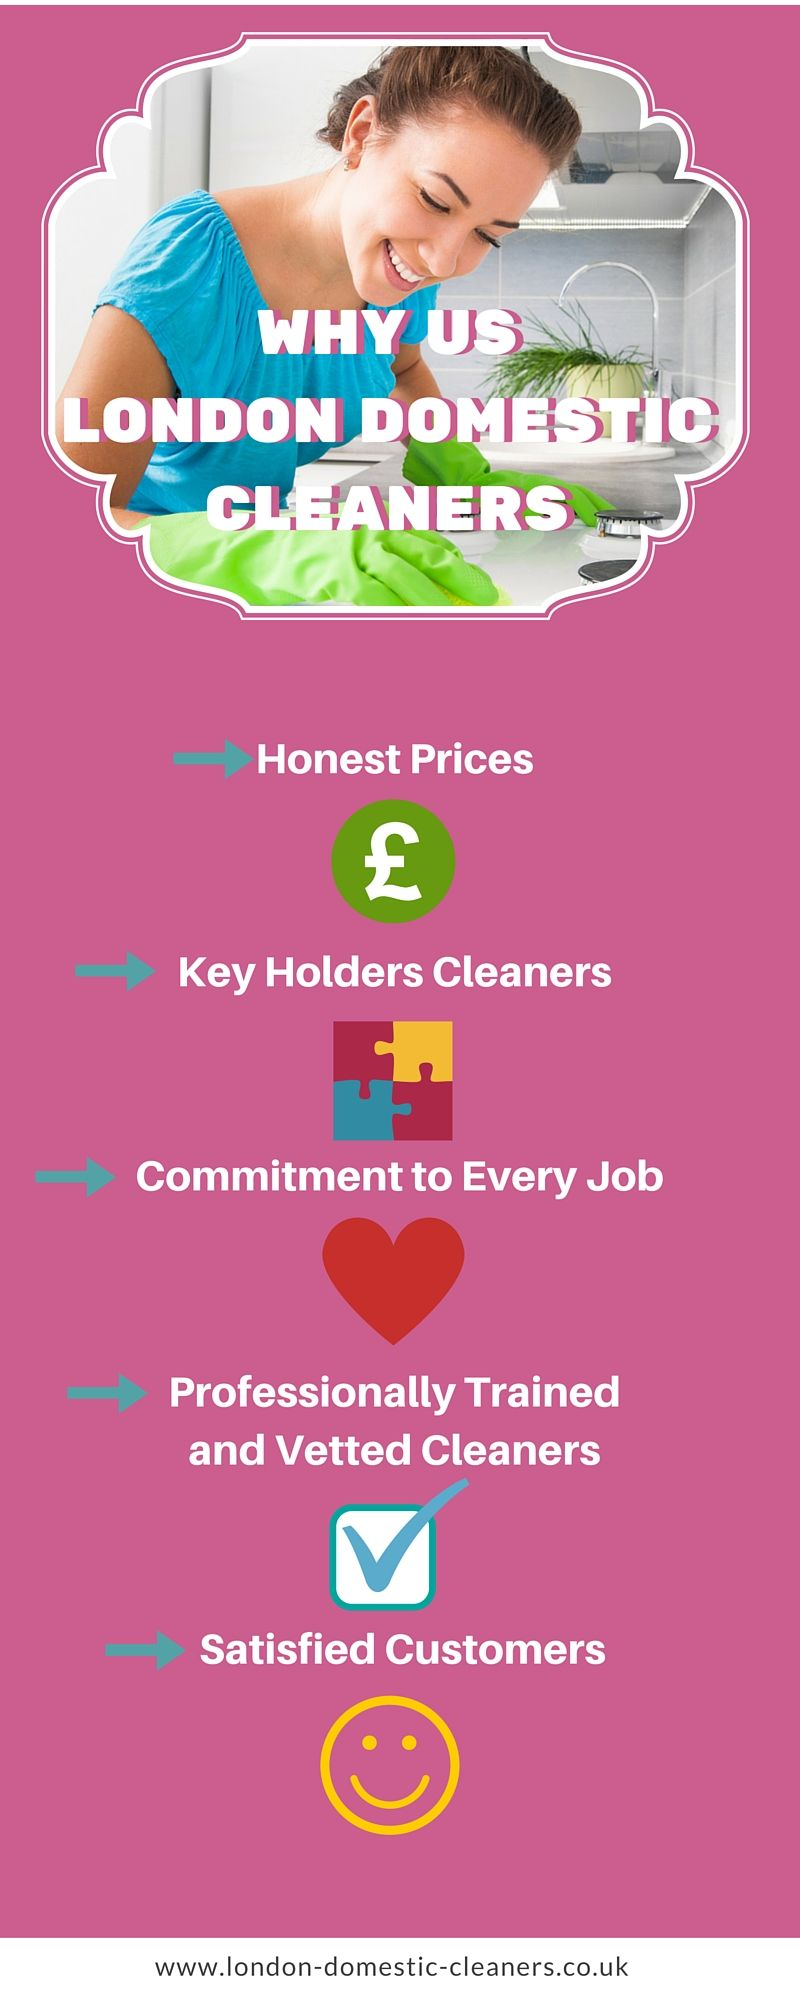 London Domestic Cleaners provides professional carpet cleaning service London. Our carpet cleaners are specialised, qualified, and insured. They use the latest tools and materials. For low carpet cleaning prices call us on 020 8884 9147.